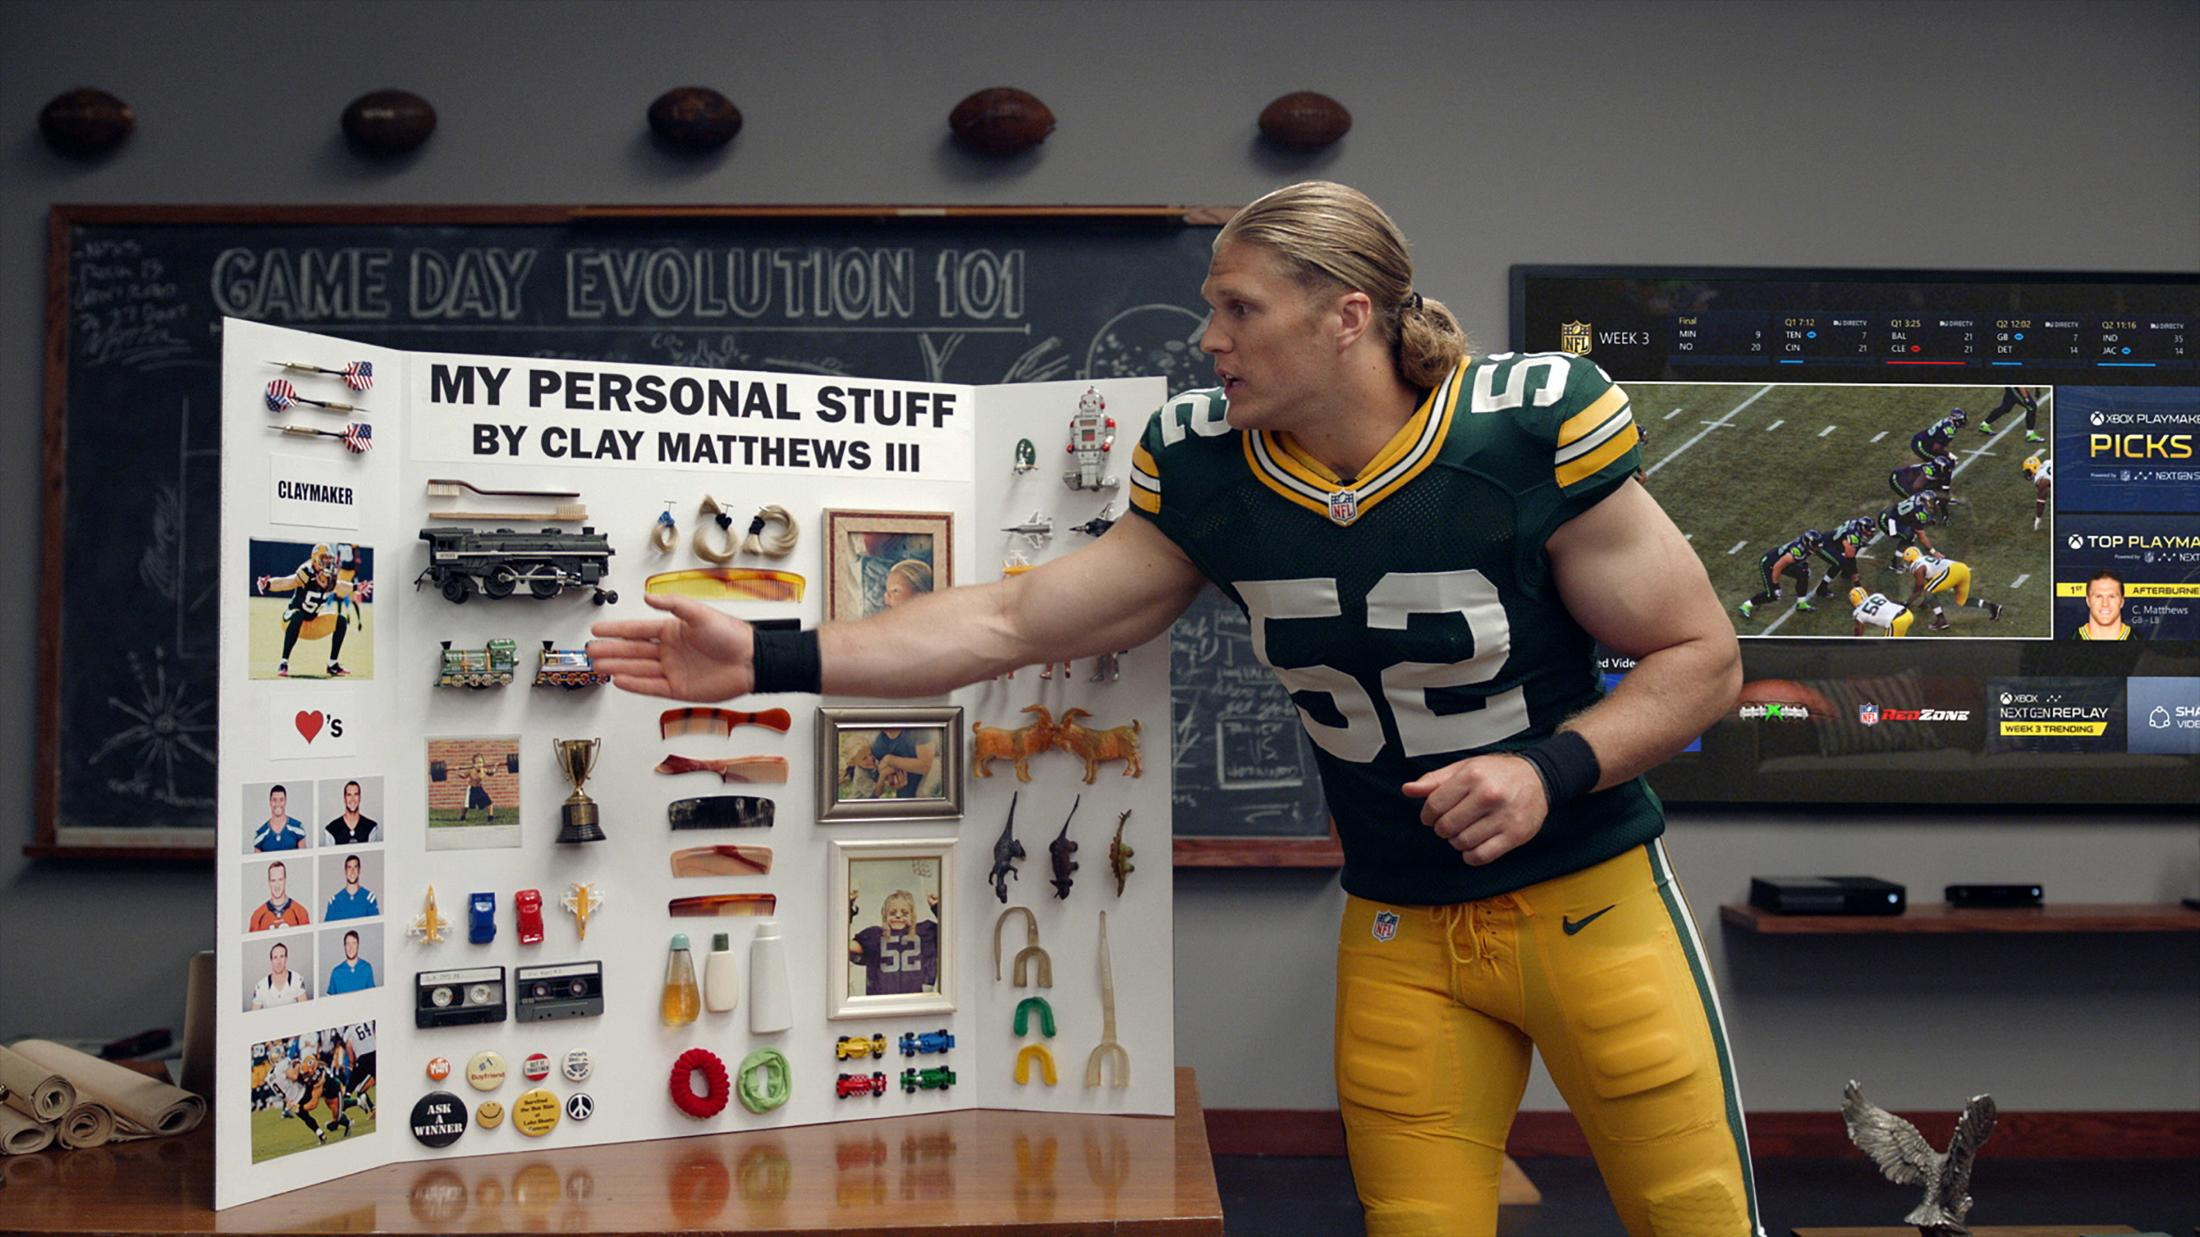 Image Media for Personalized Content with Clay Matthews III